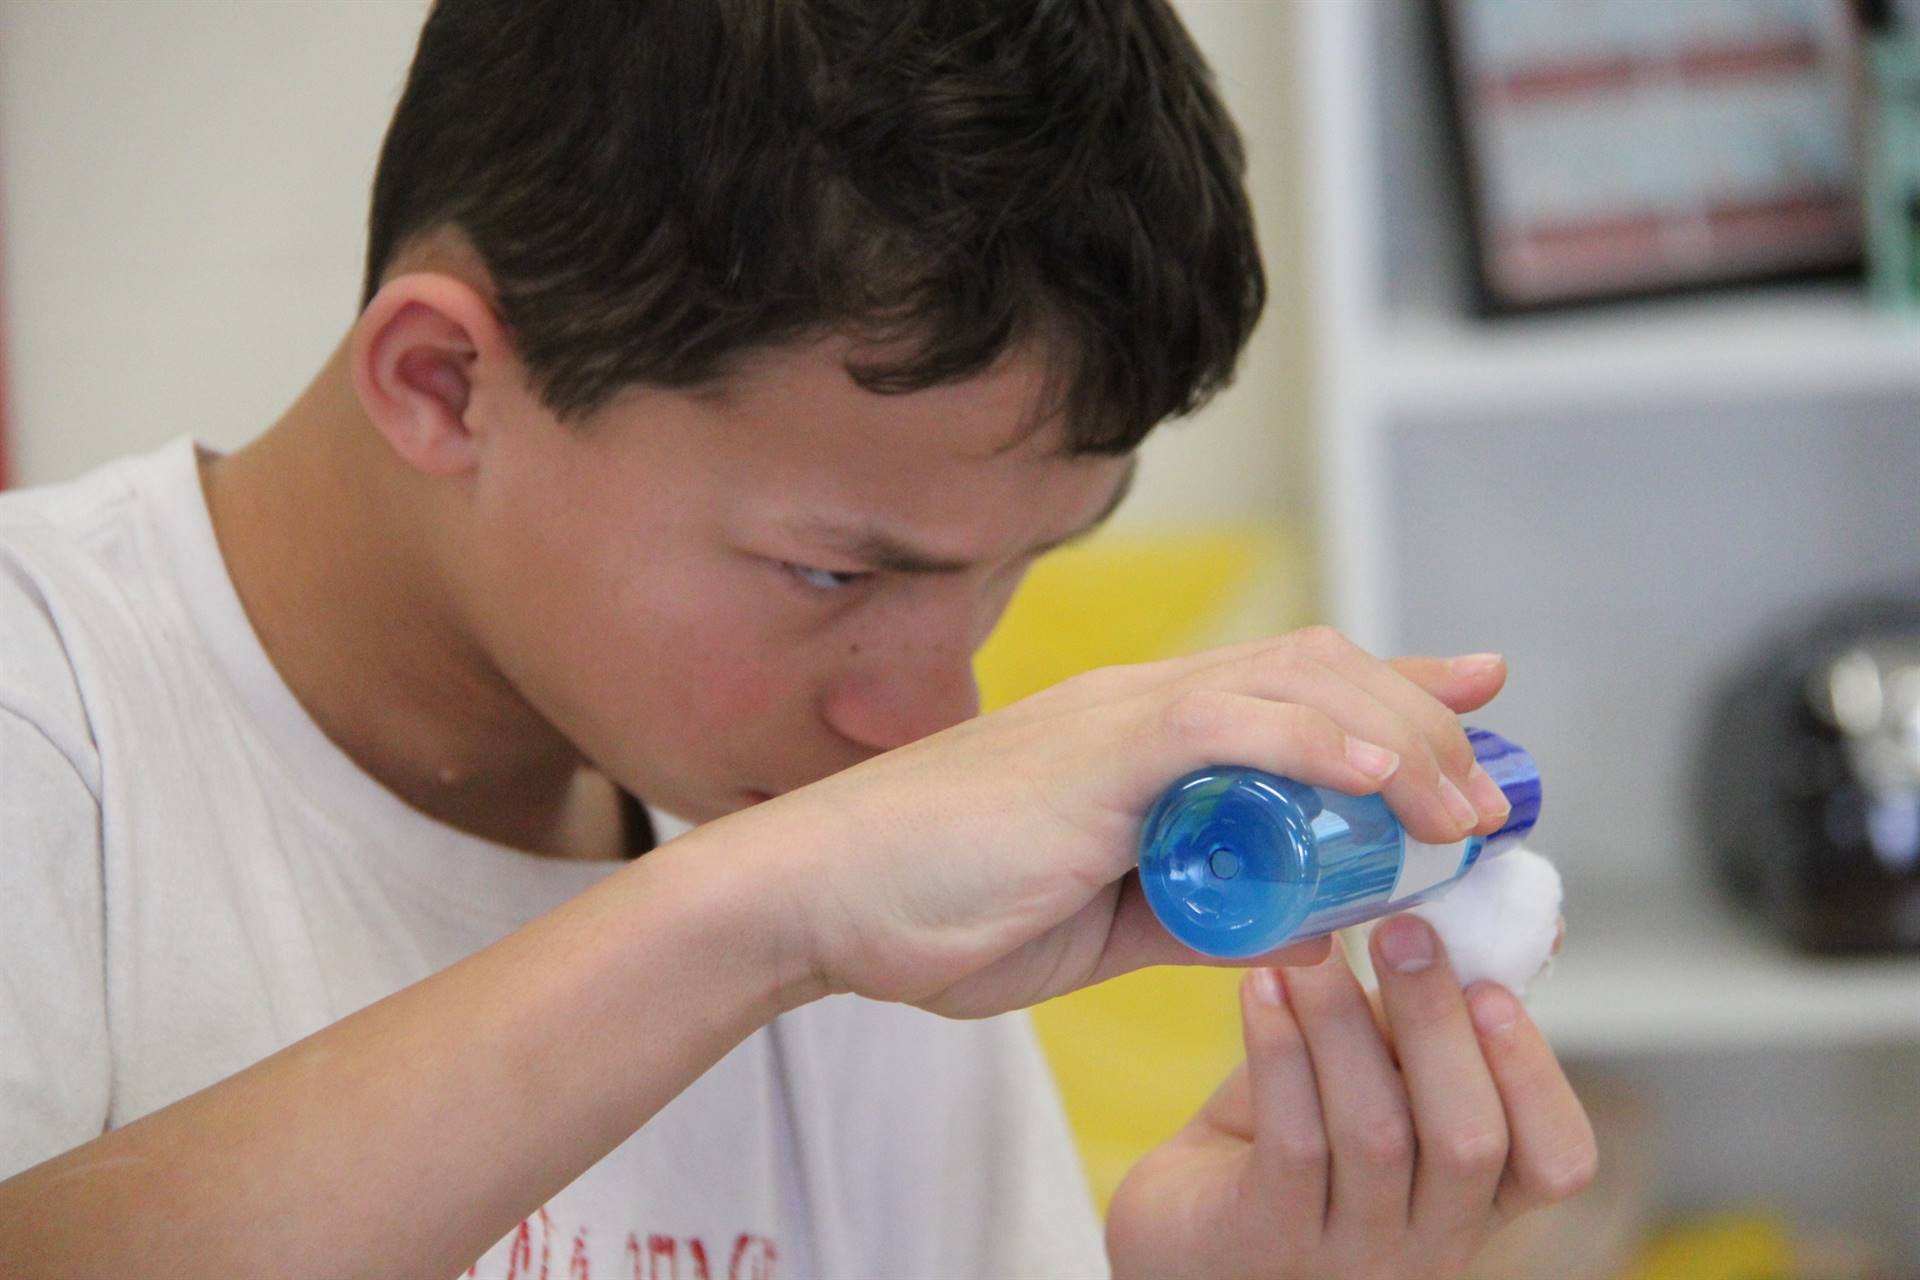 student putting water on cotton swab